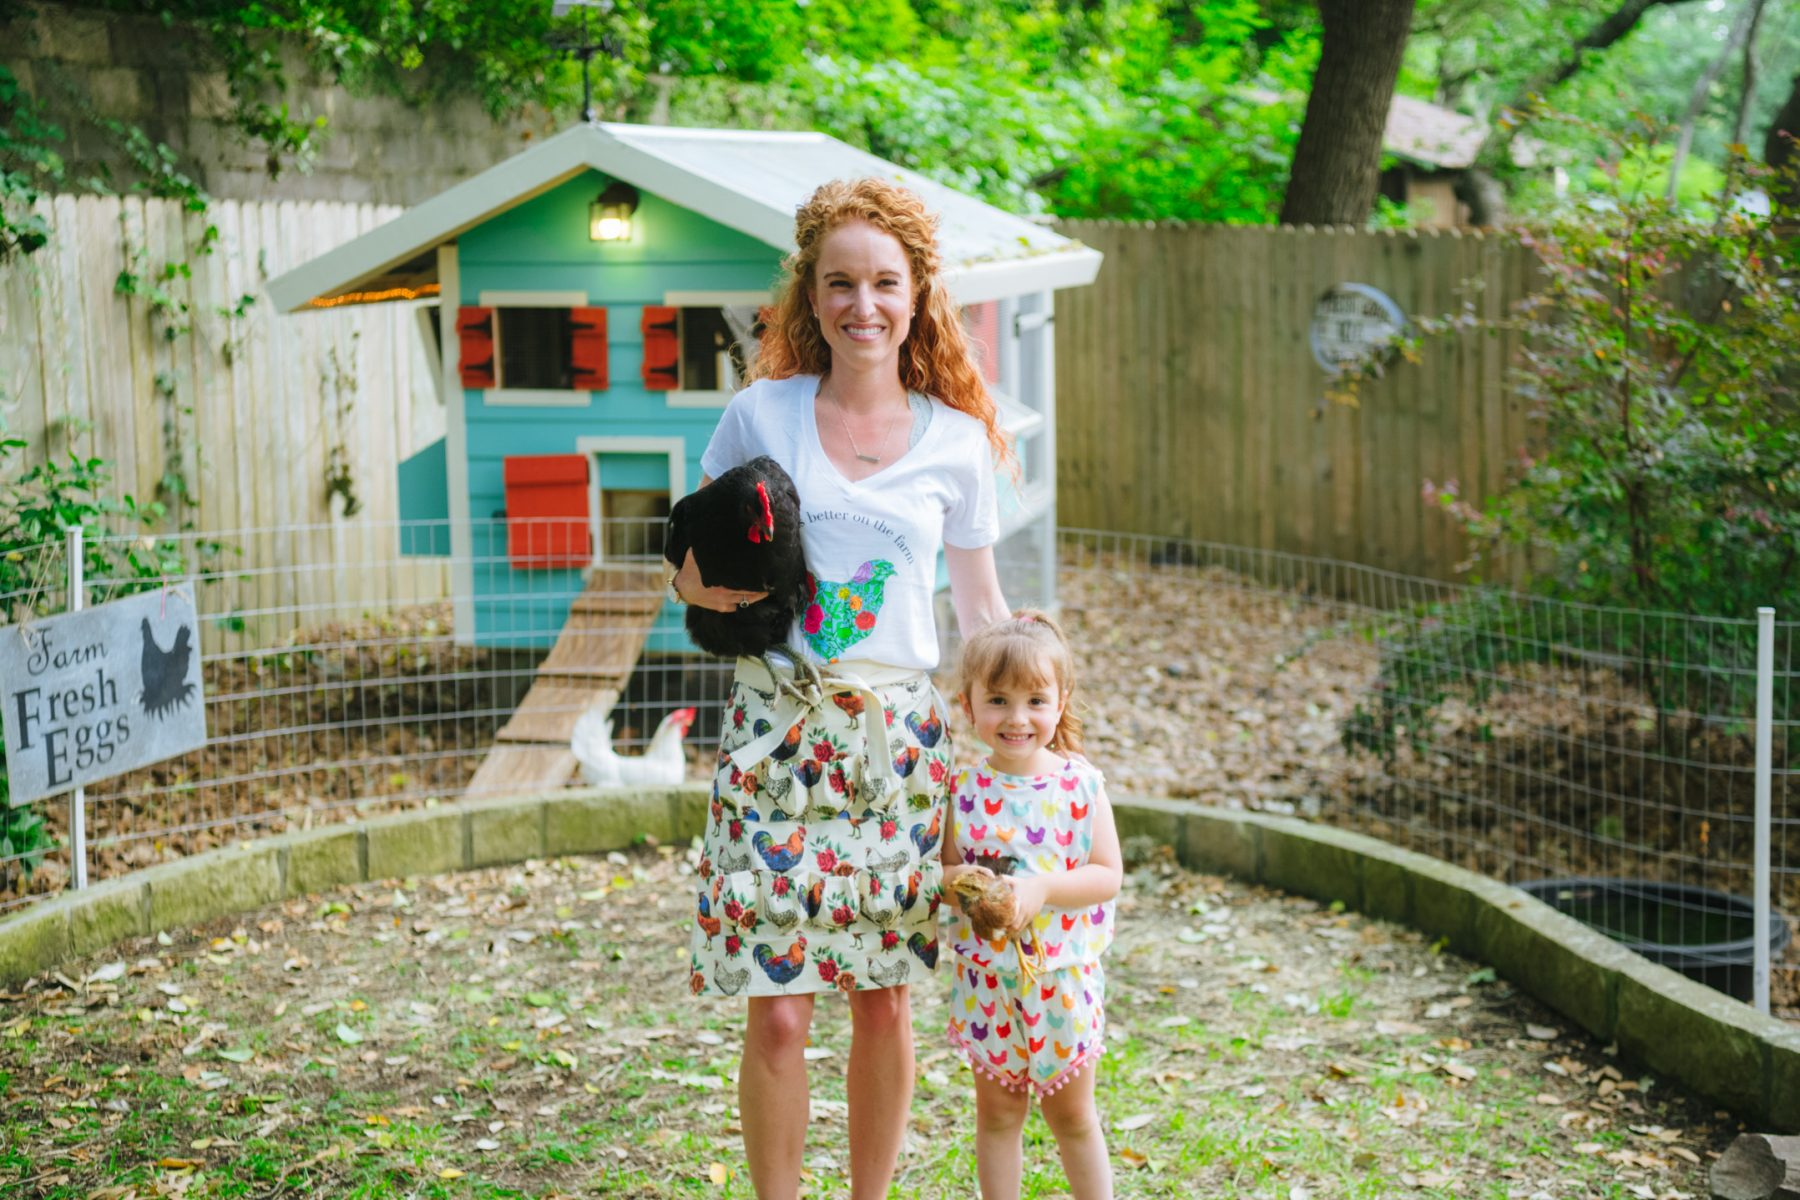 Fluffy Layers Reviews – Chicken Aprons & More